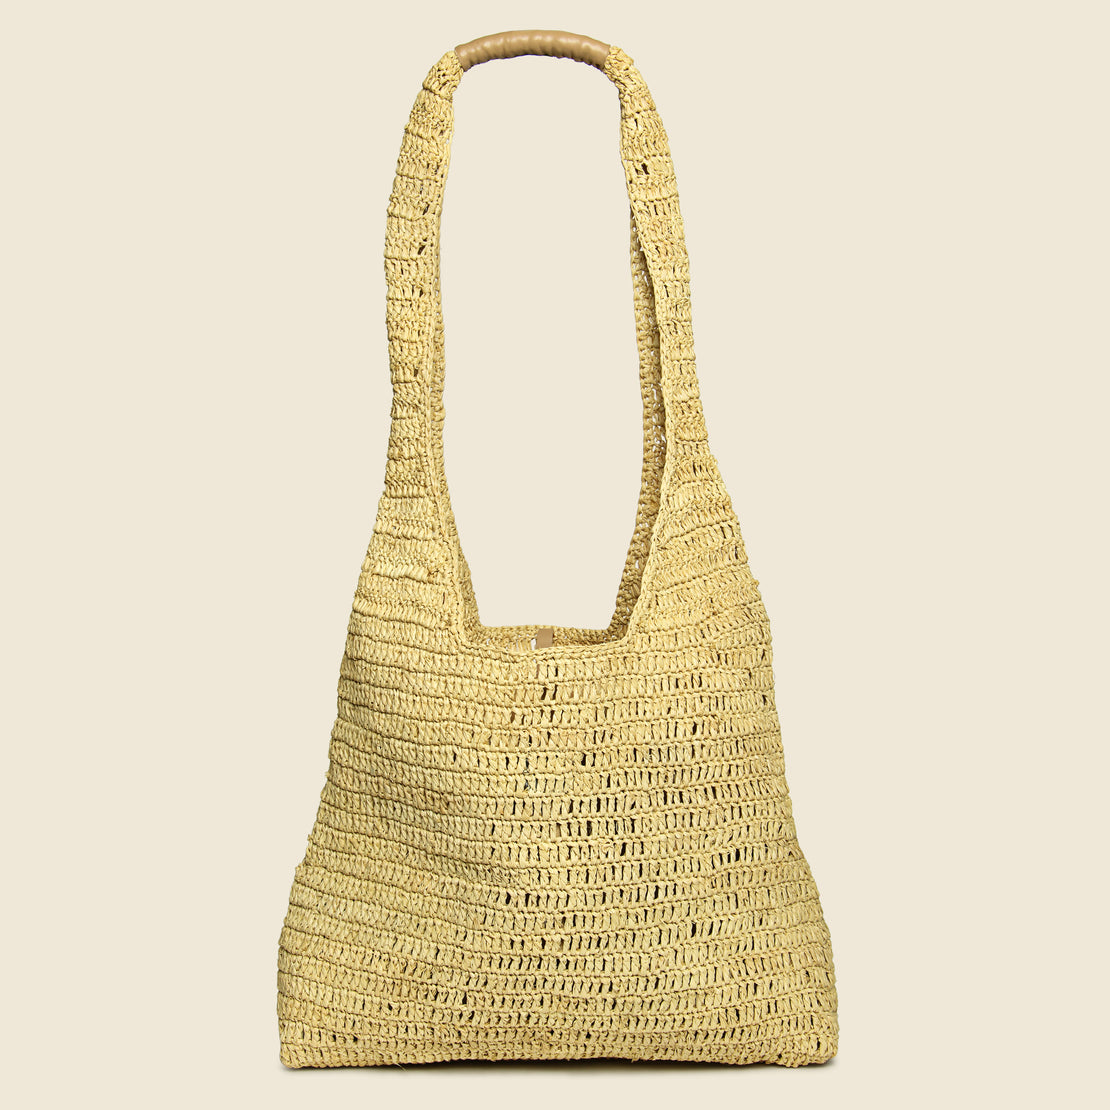 Maison NH Paris Lea Raffia Shoulder Bag - Natural